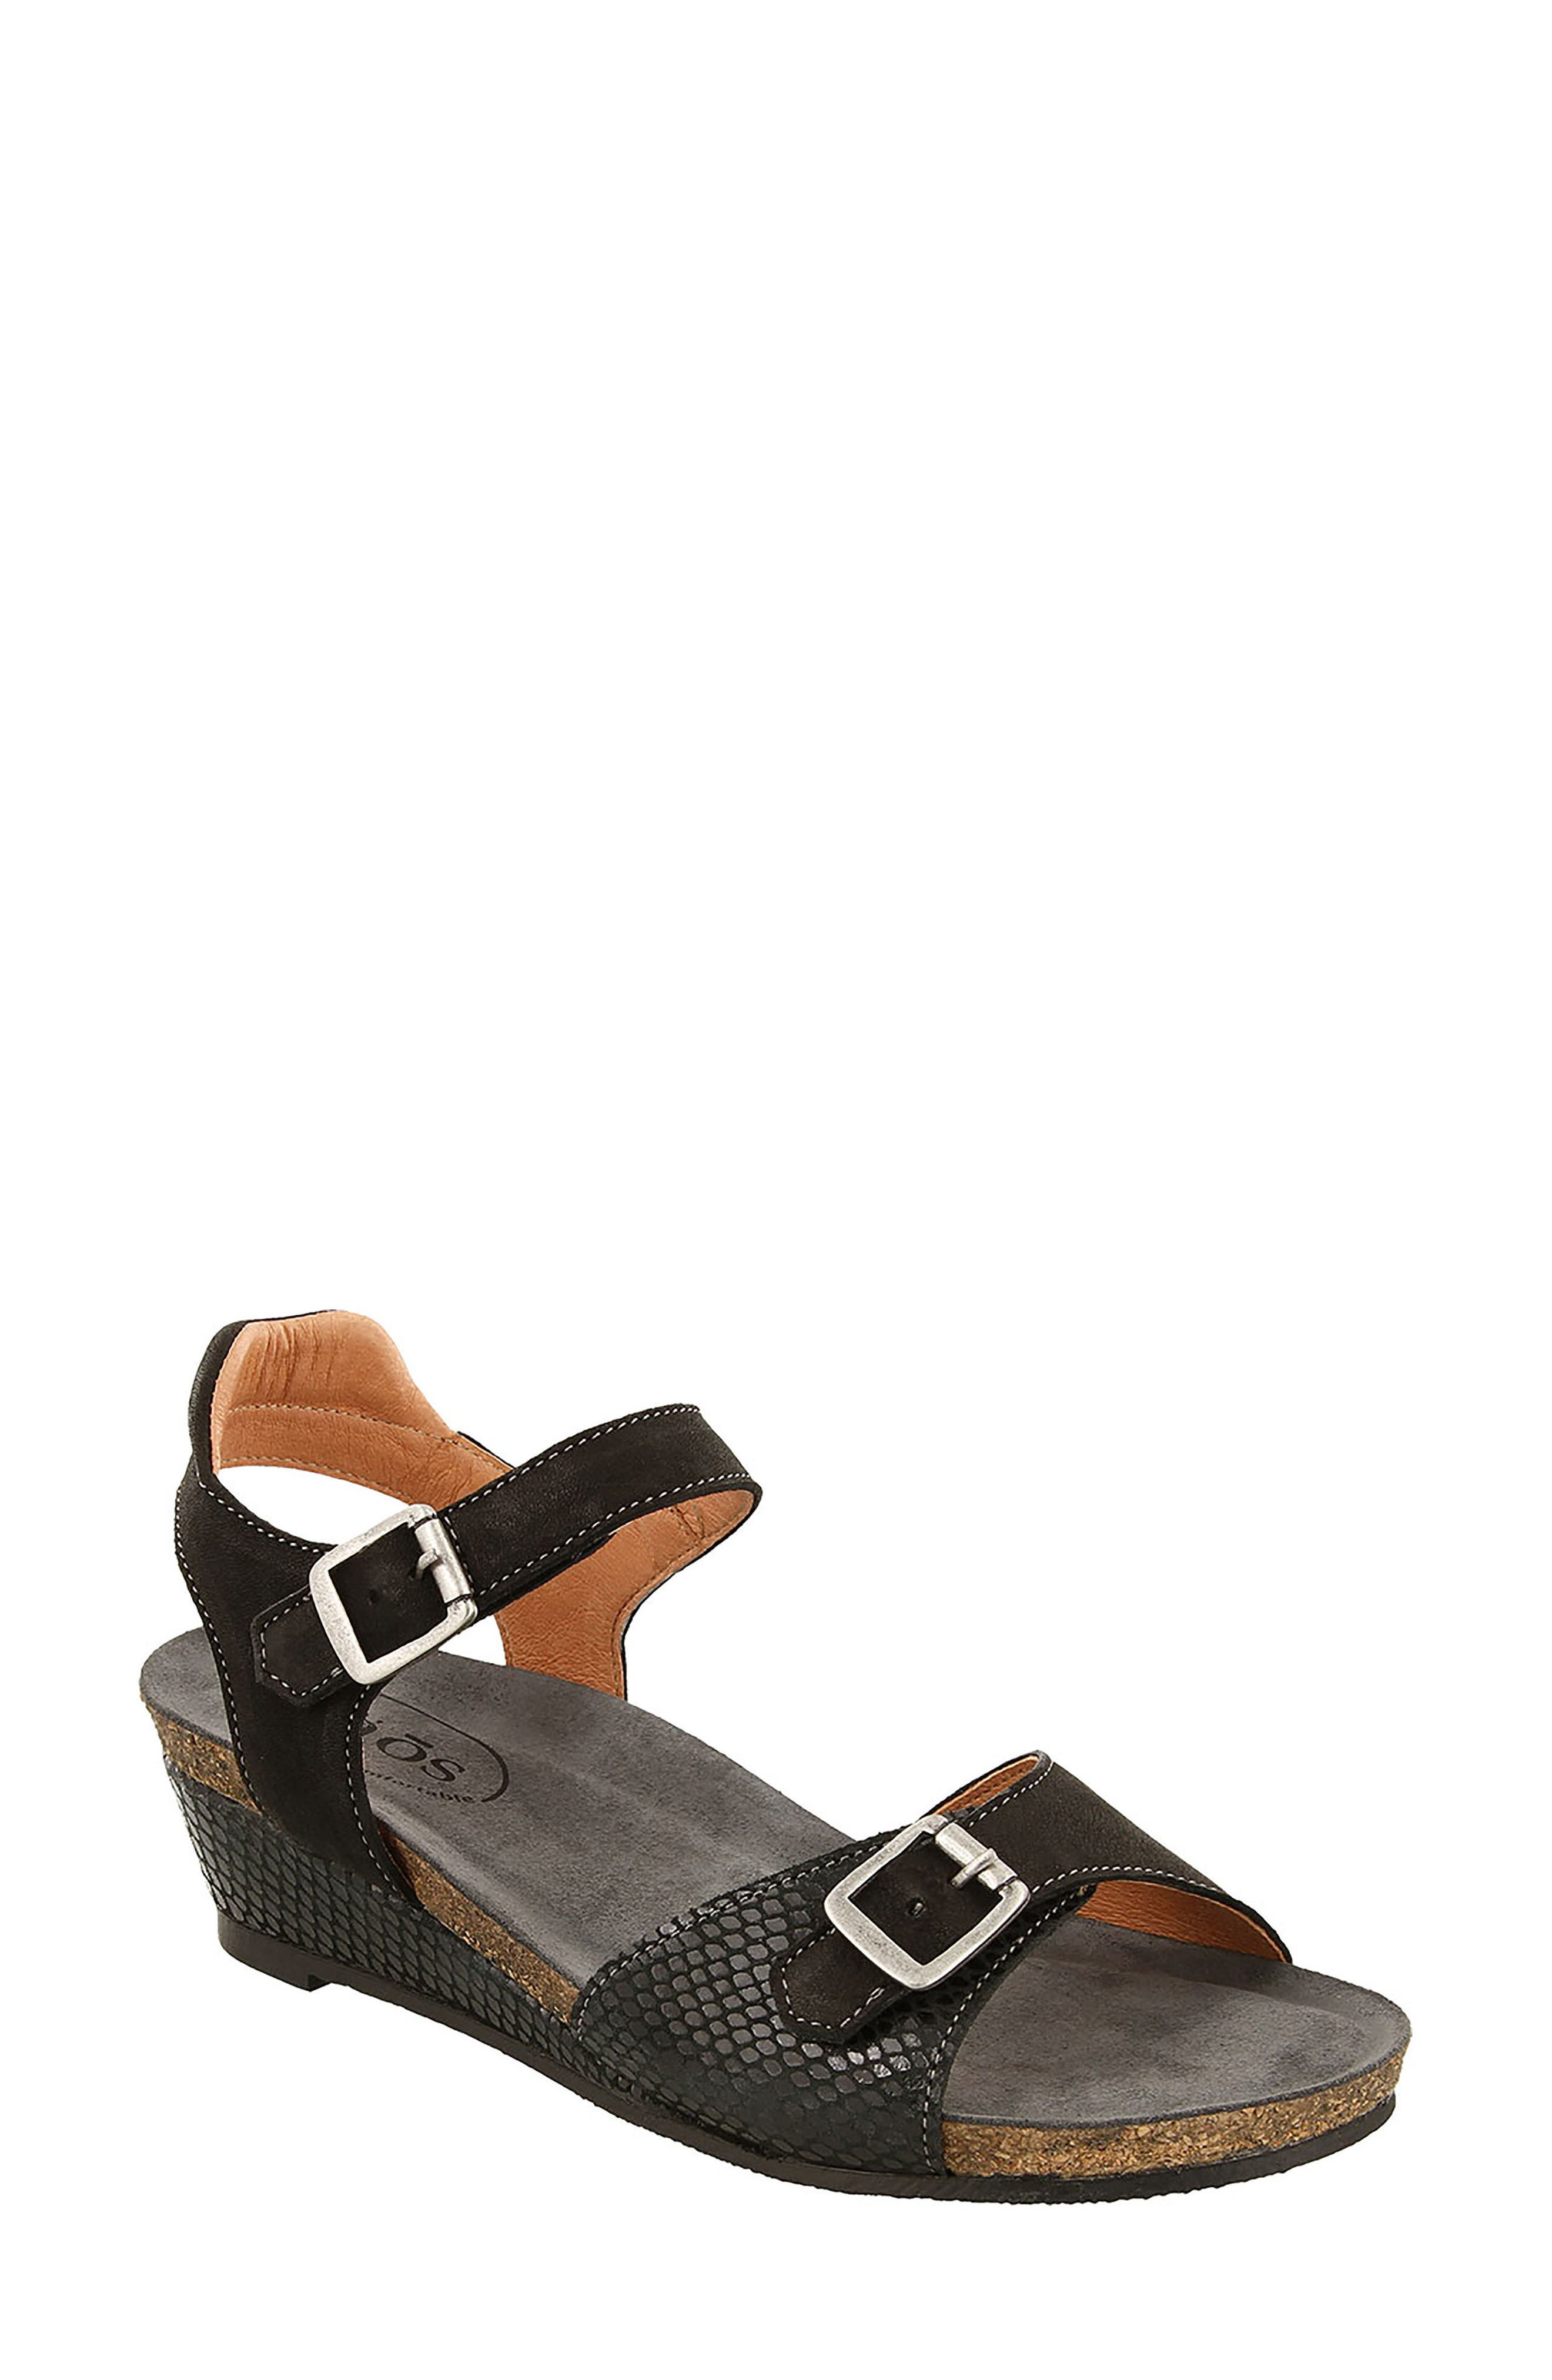 Traveler Wedge Sandal,                             Main thumbnail 1, color,                             002